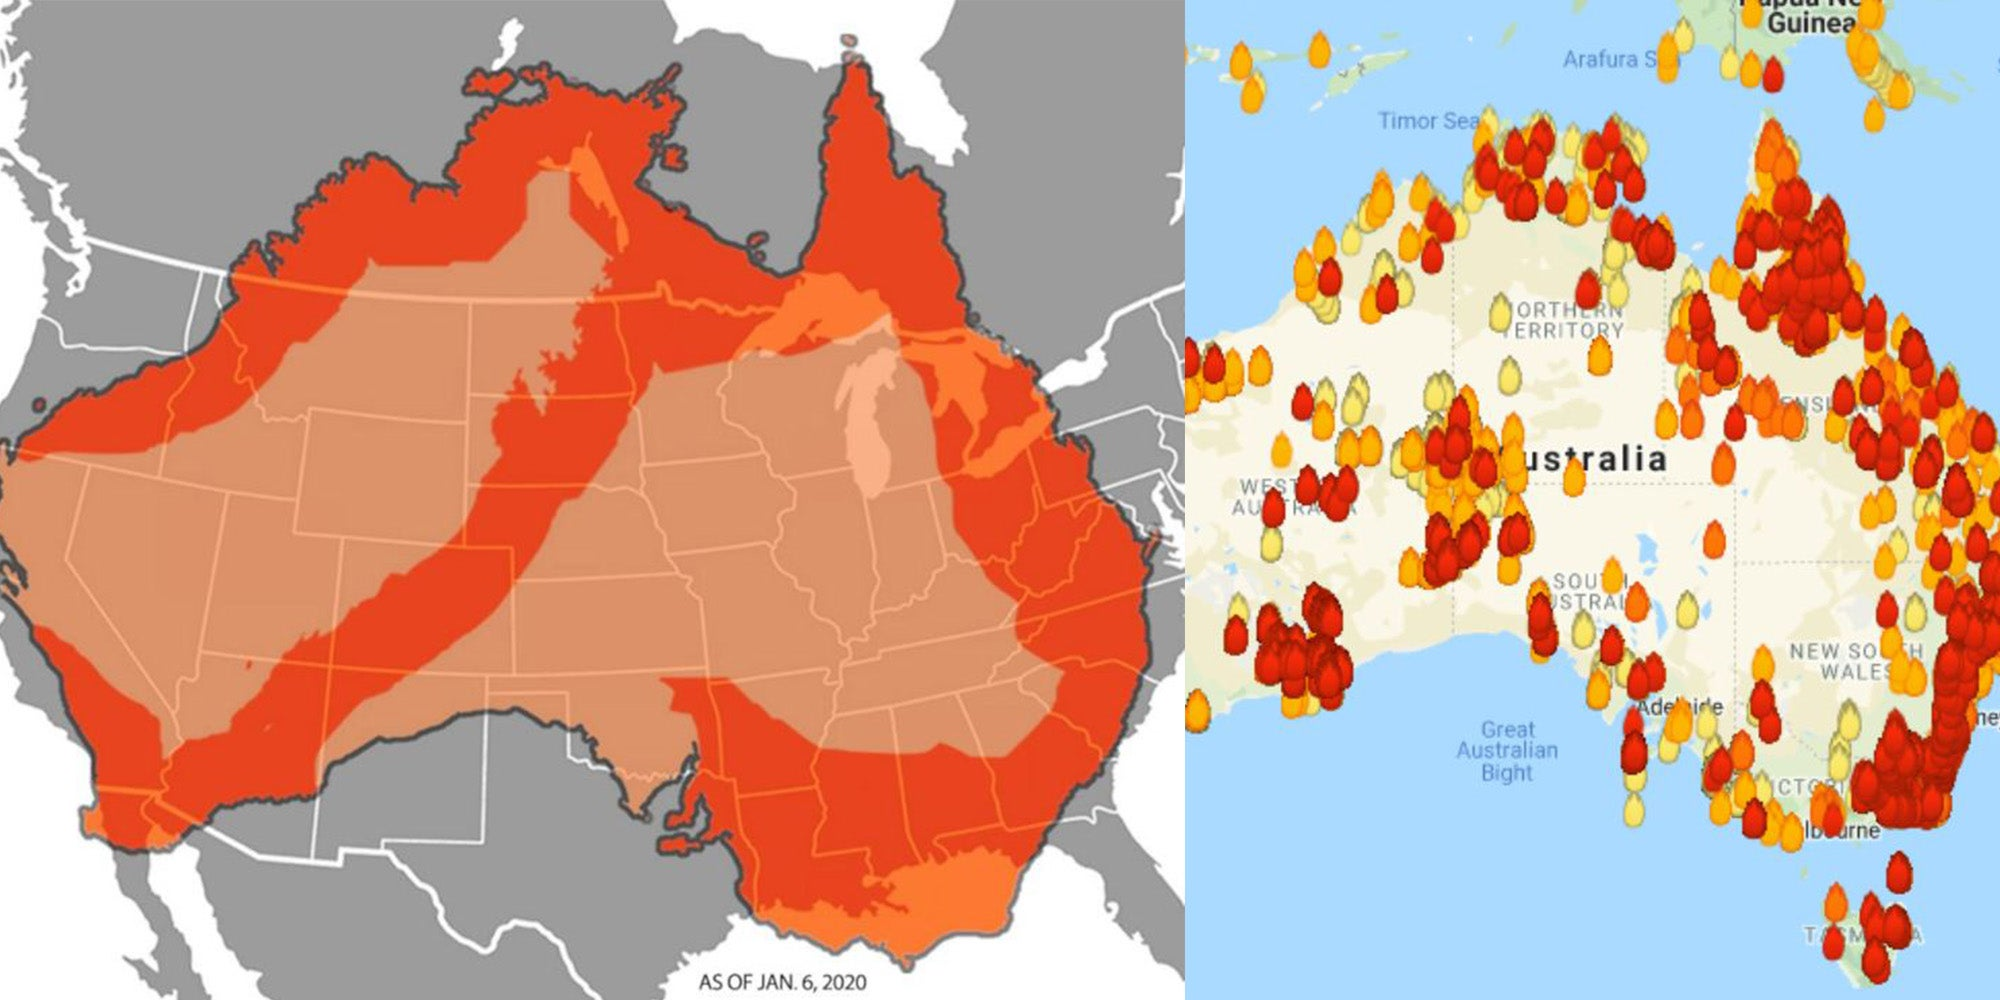 Map Of Australia Fires 2020.Australia Wildfires Some Of The Maps Showing The Extent Of The